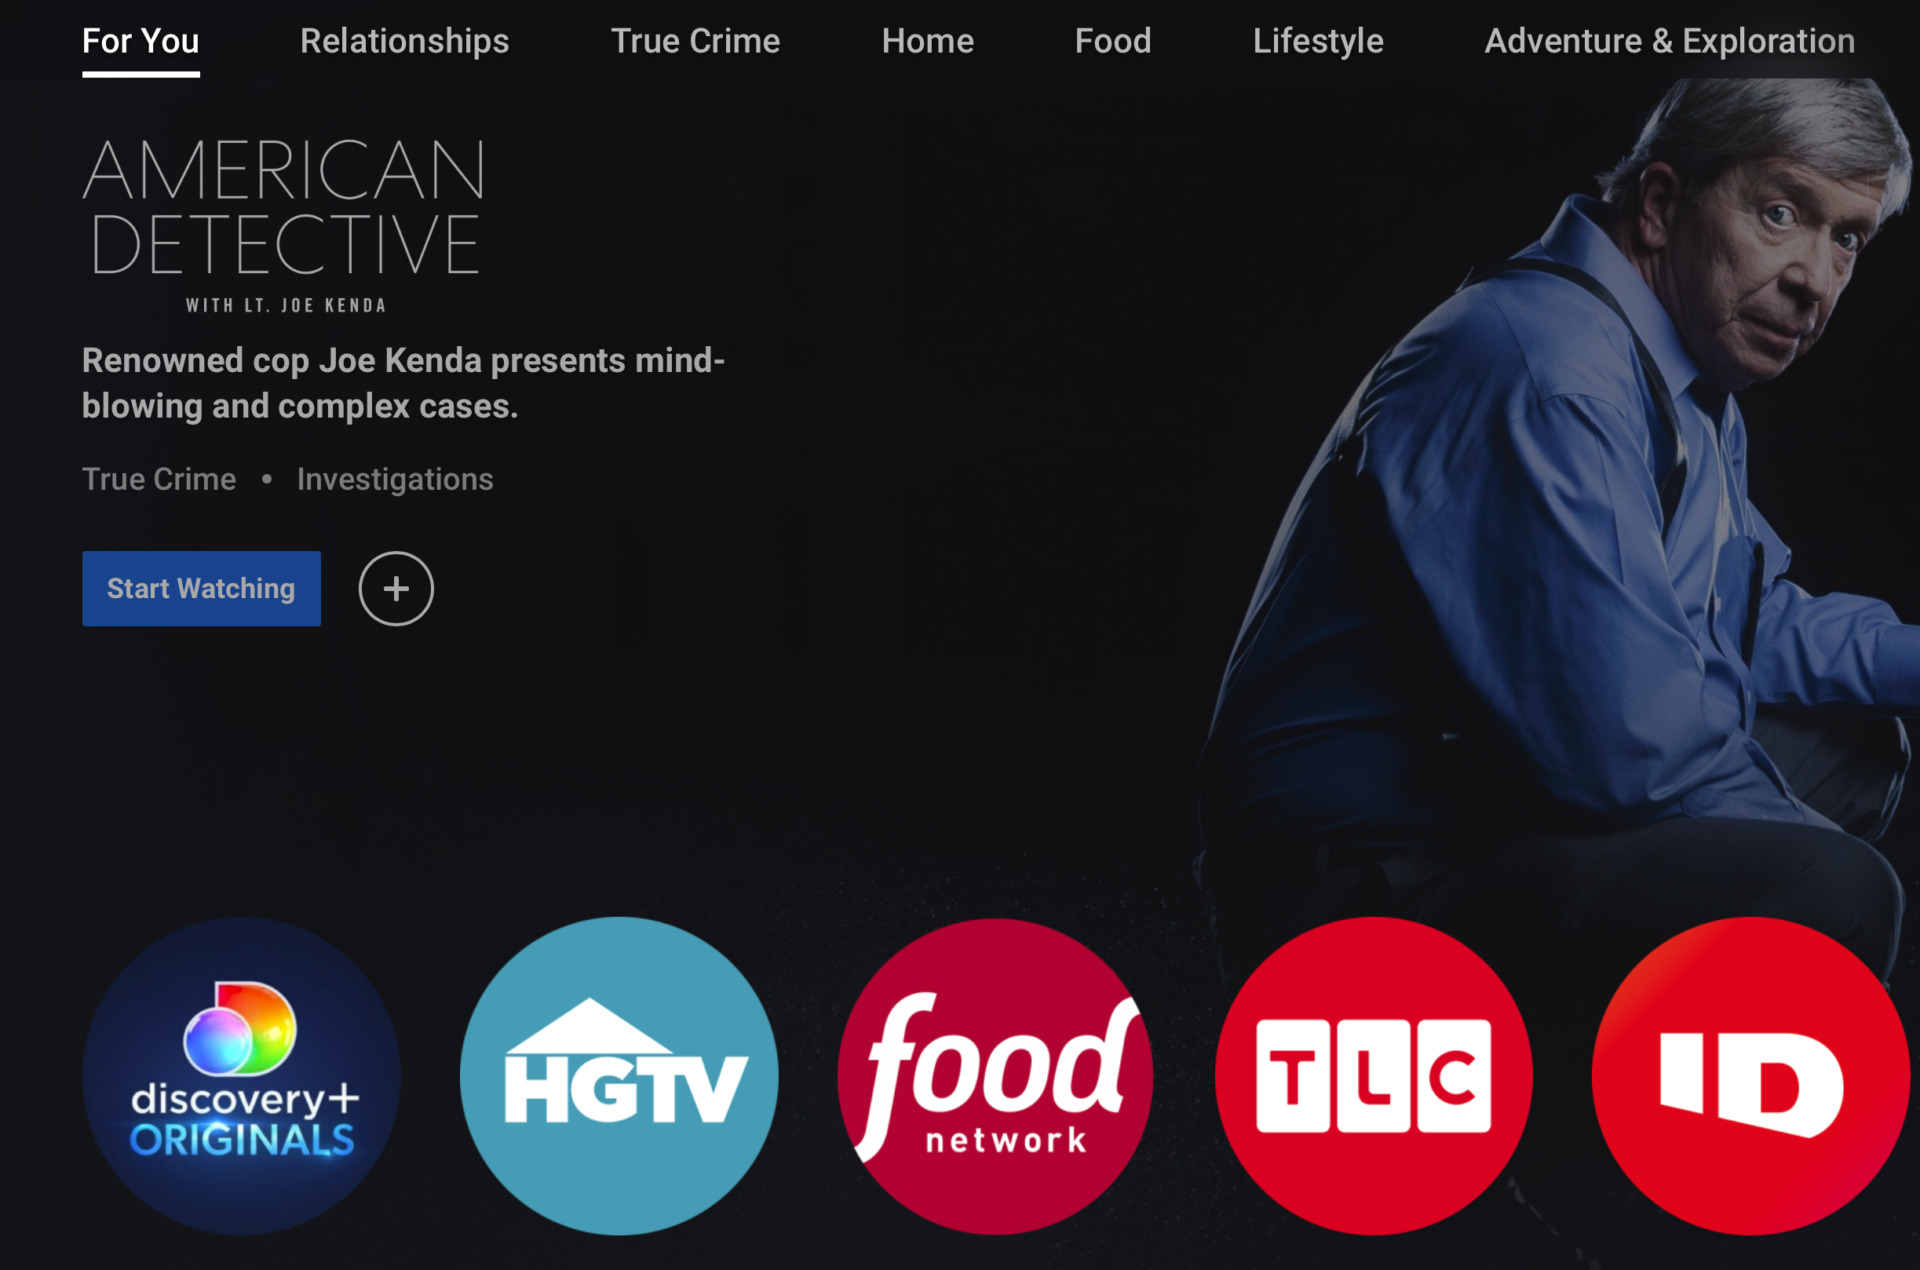 Discovery Plus page